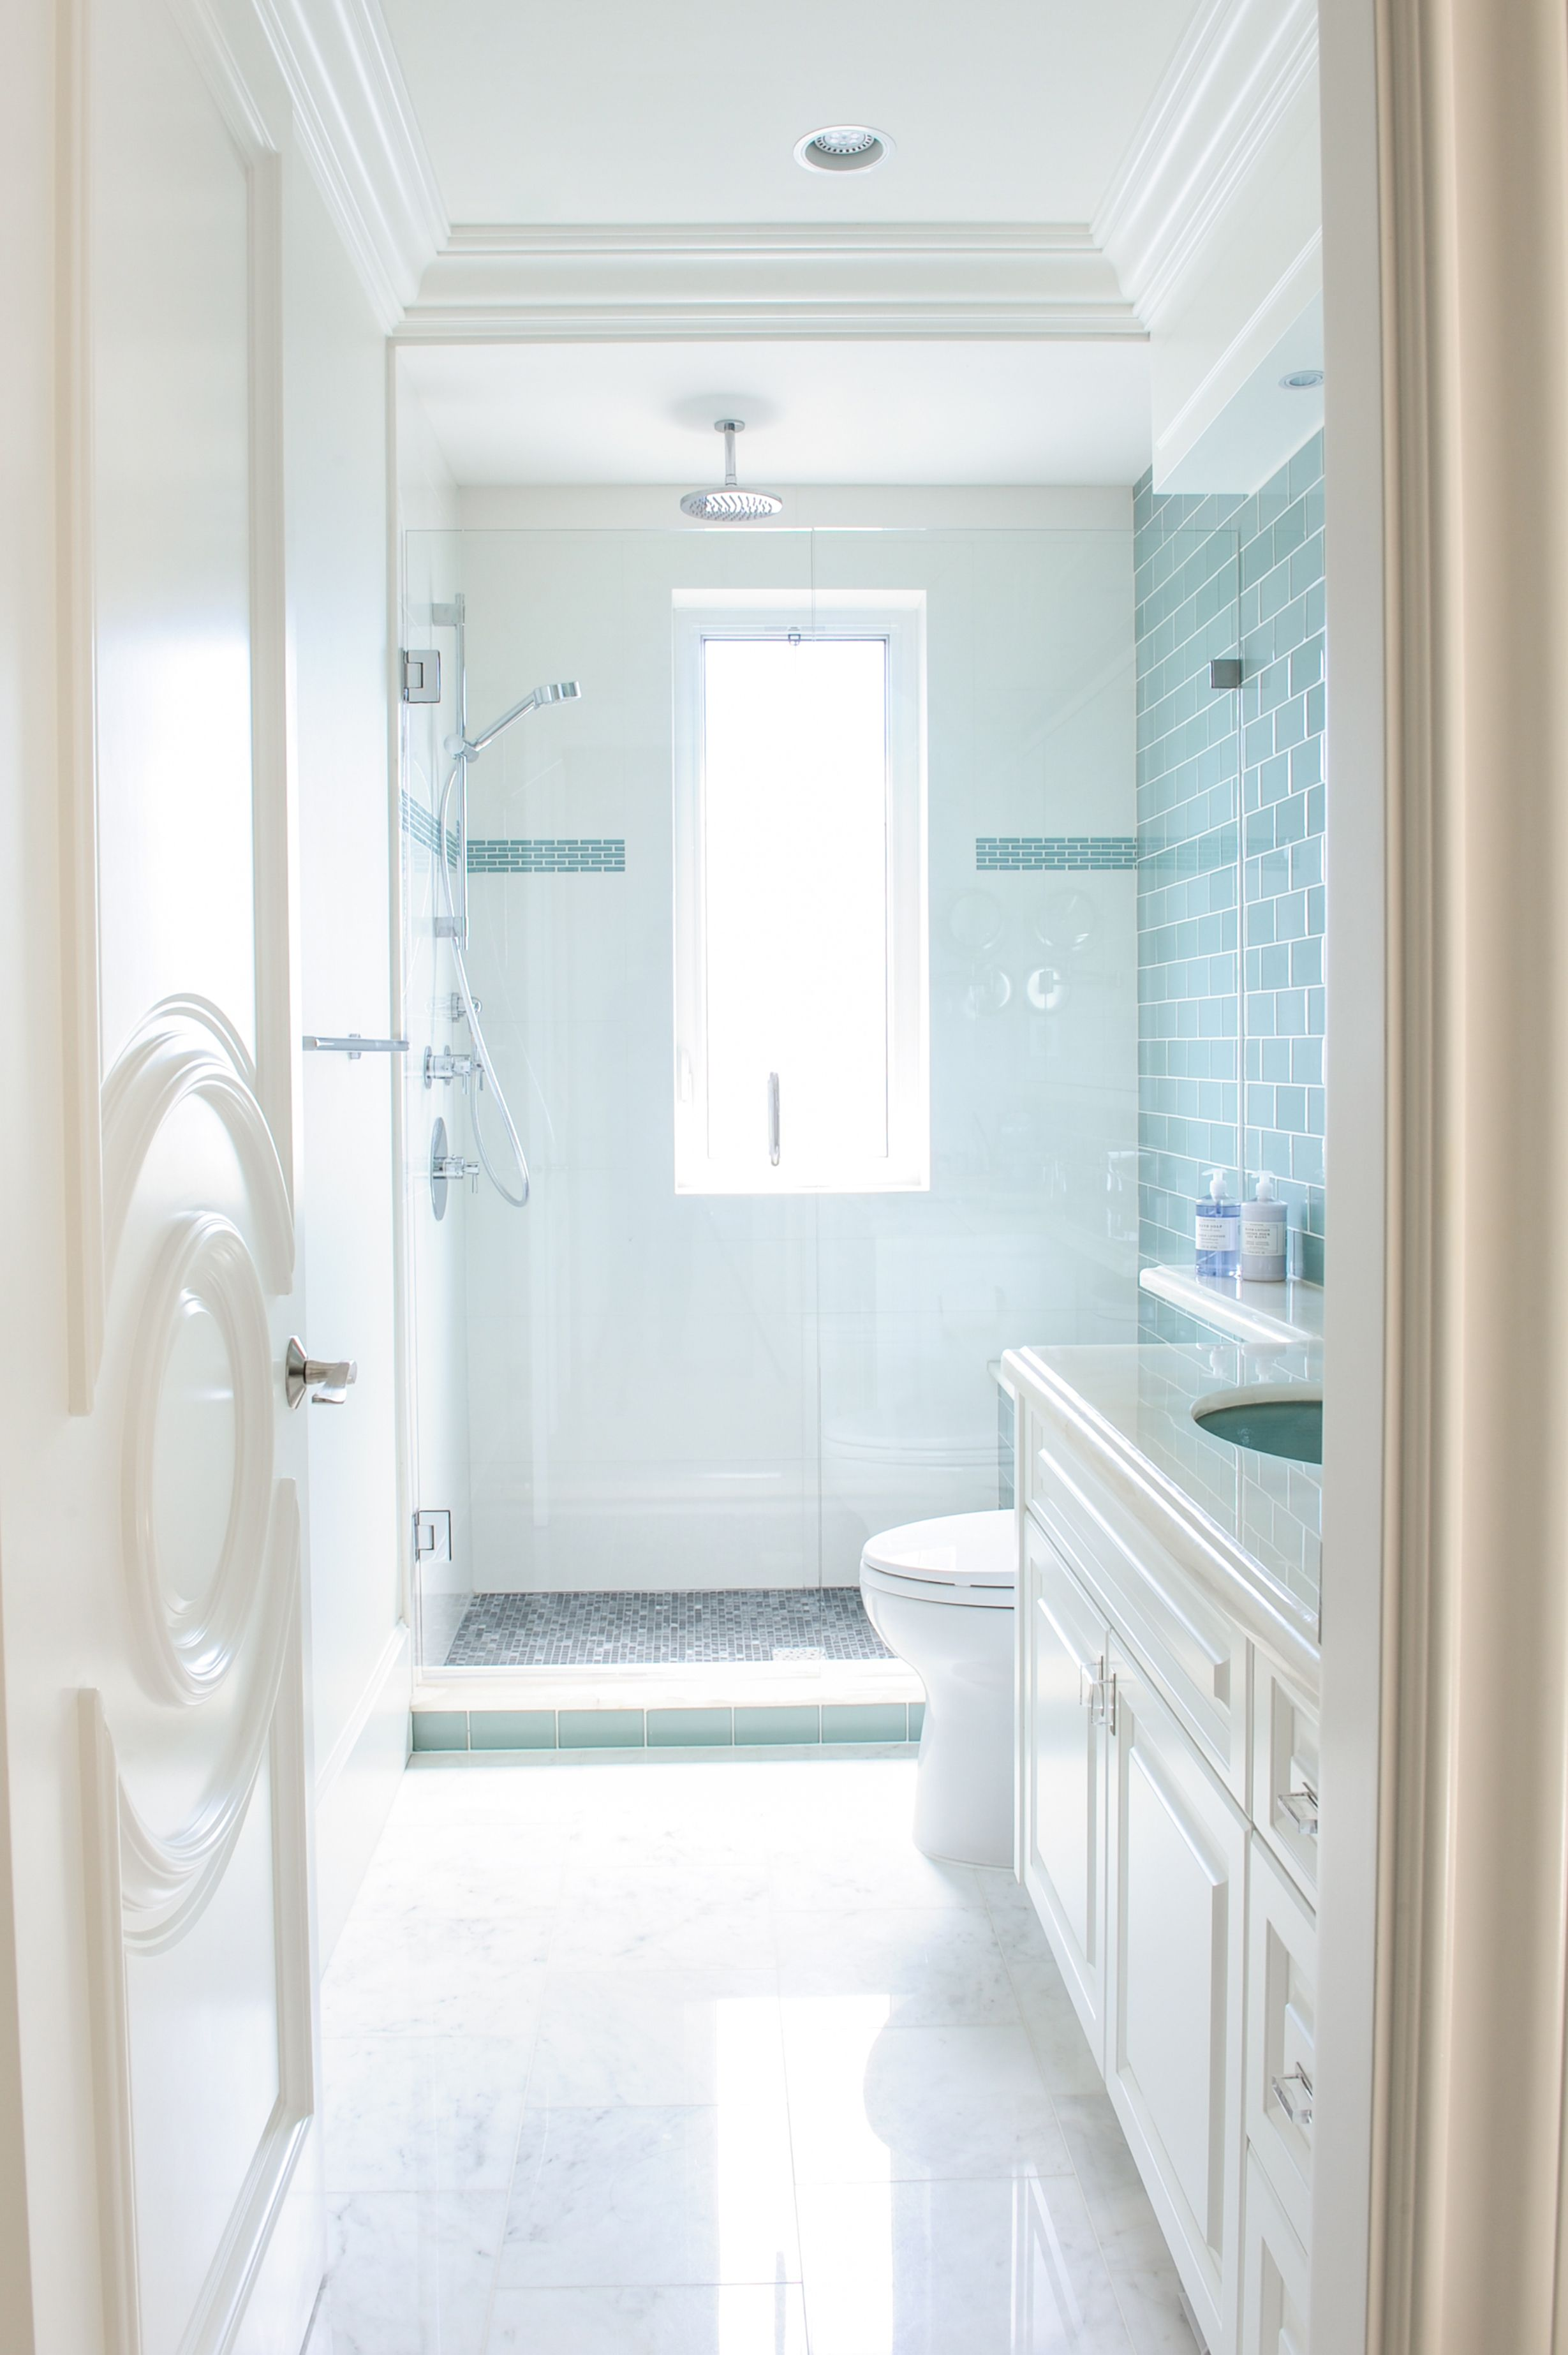 Bathroom designed by Enviable Designs - A central window opening ...